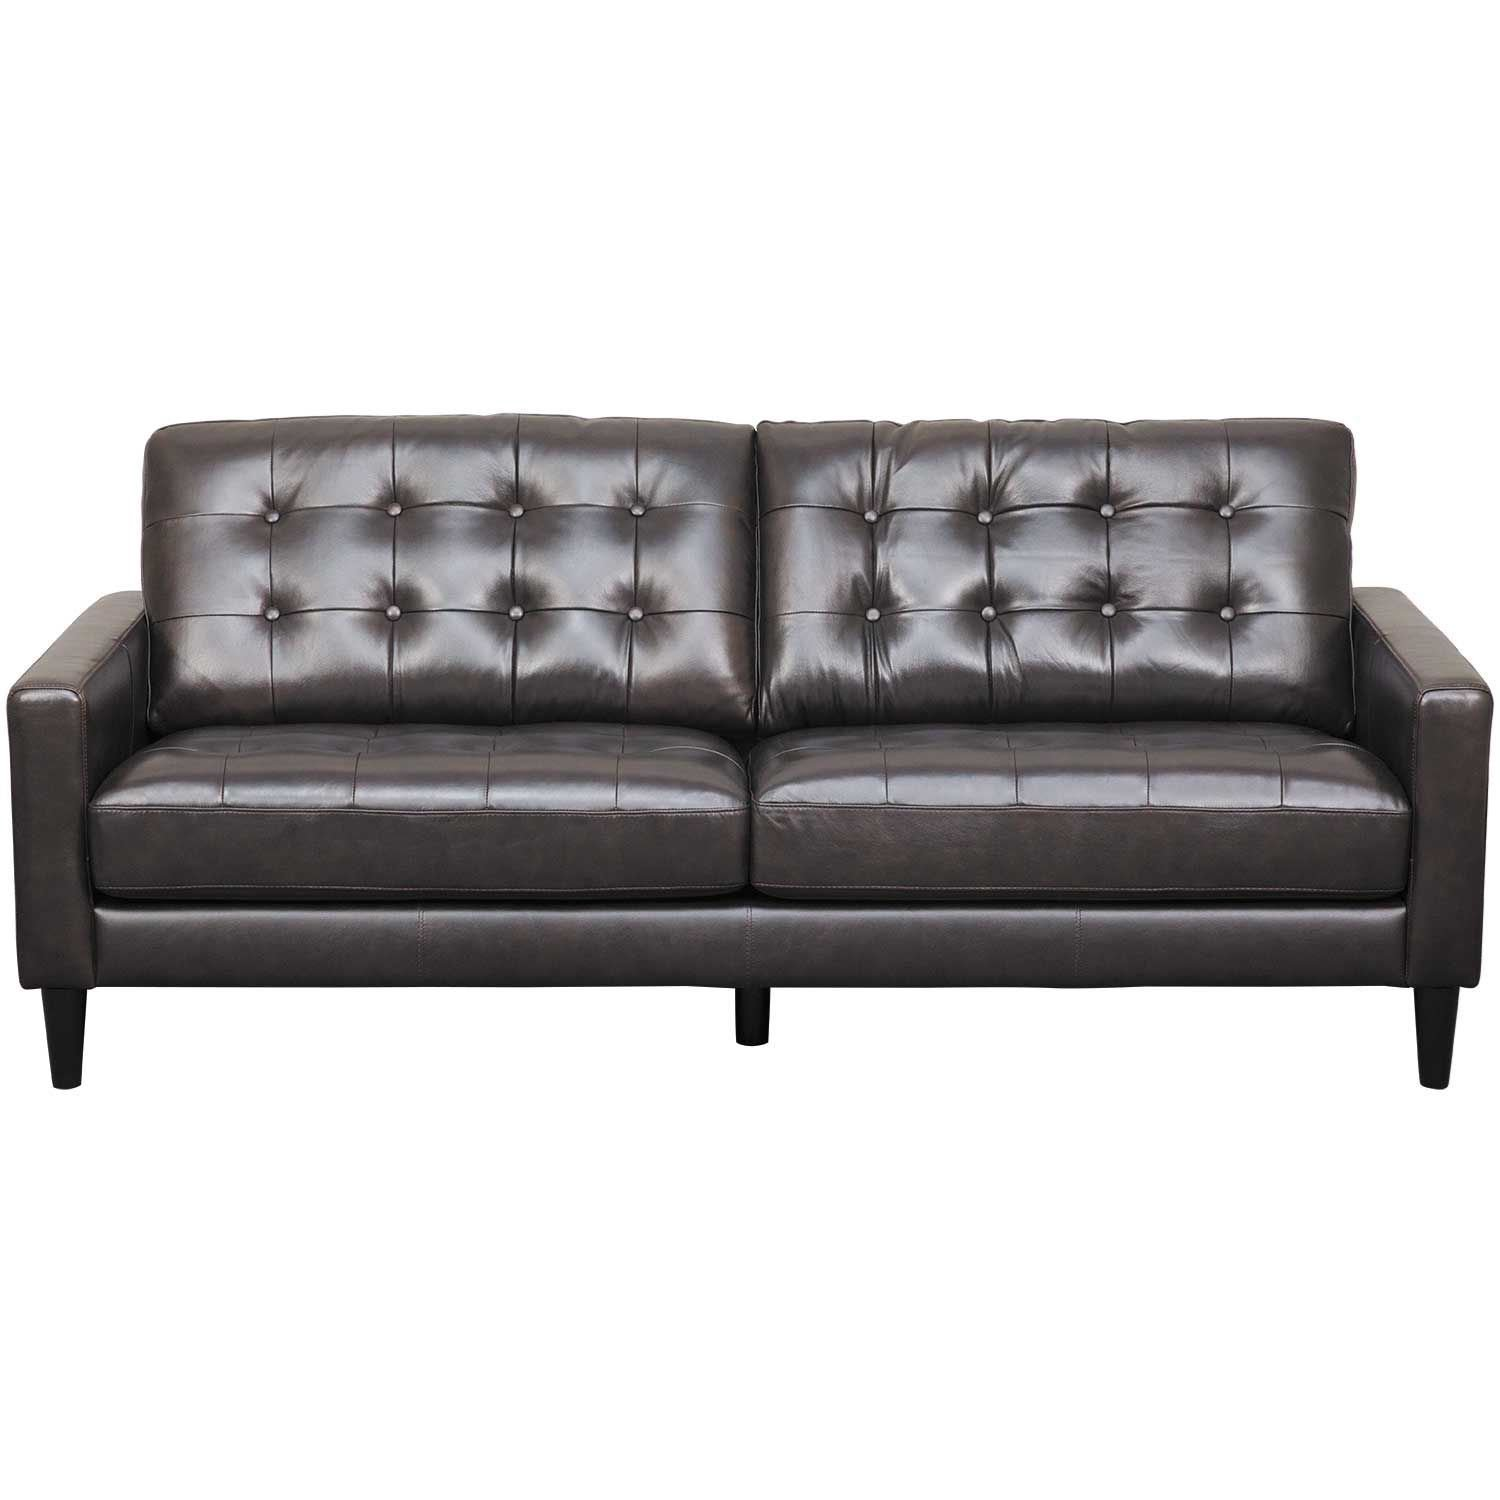 dark brown leather couches pillow picture of ashton dark brown leather sofa as5957brdbrn3 abbyson living afw